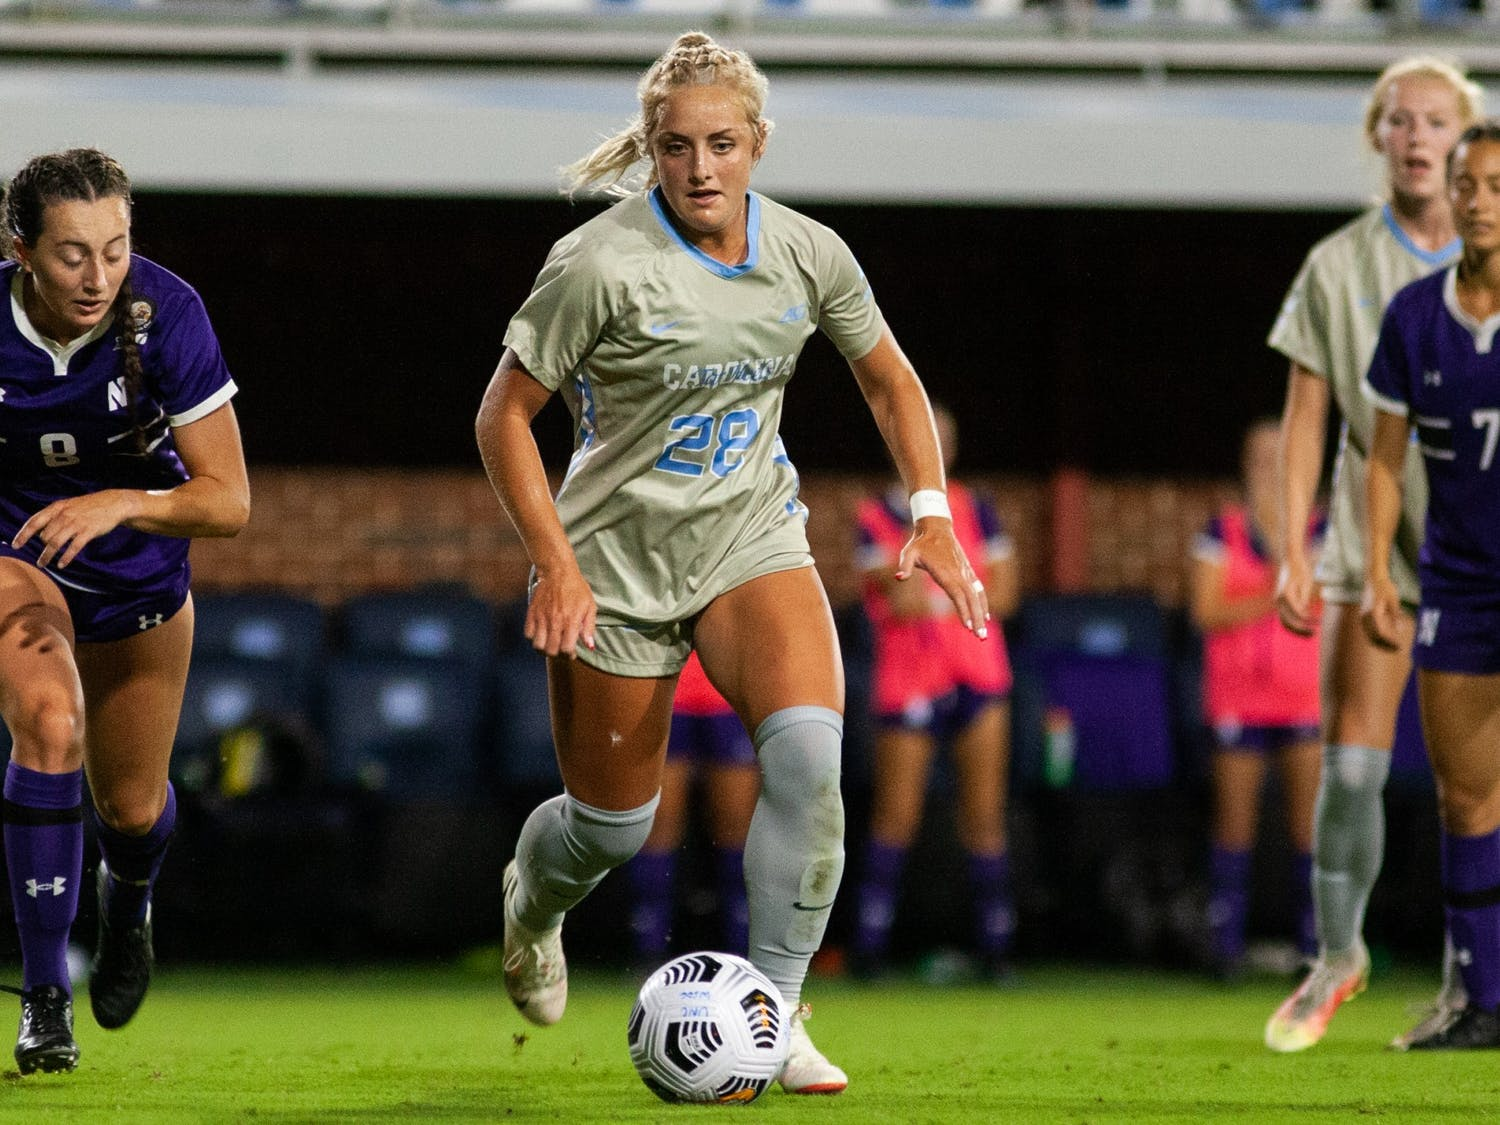 Junior midfielder Maddie Pierce (28) moves the ball down the field at the home game against Northwestern on Sept 2. UNC won 2-0.